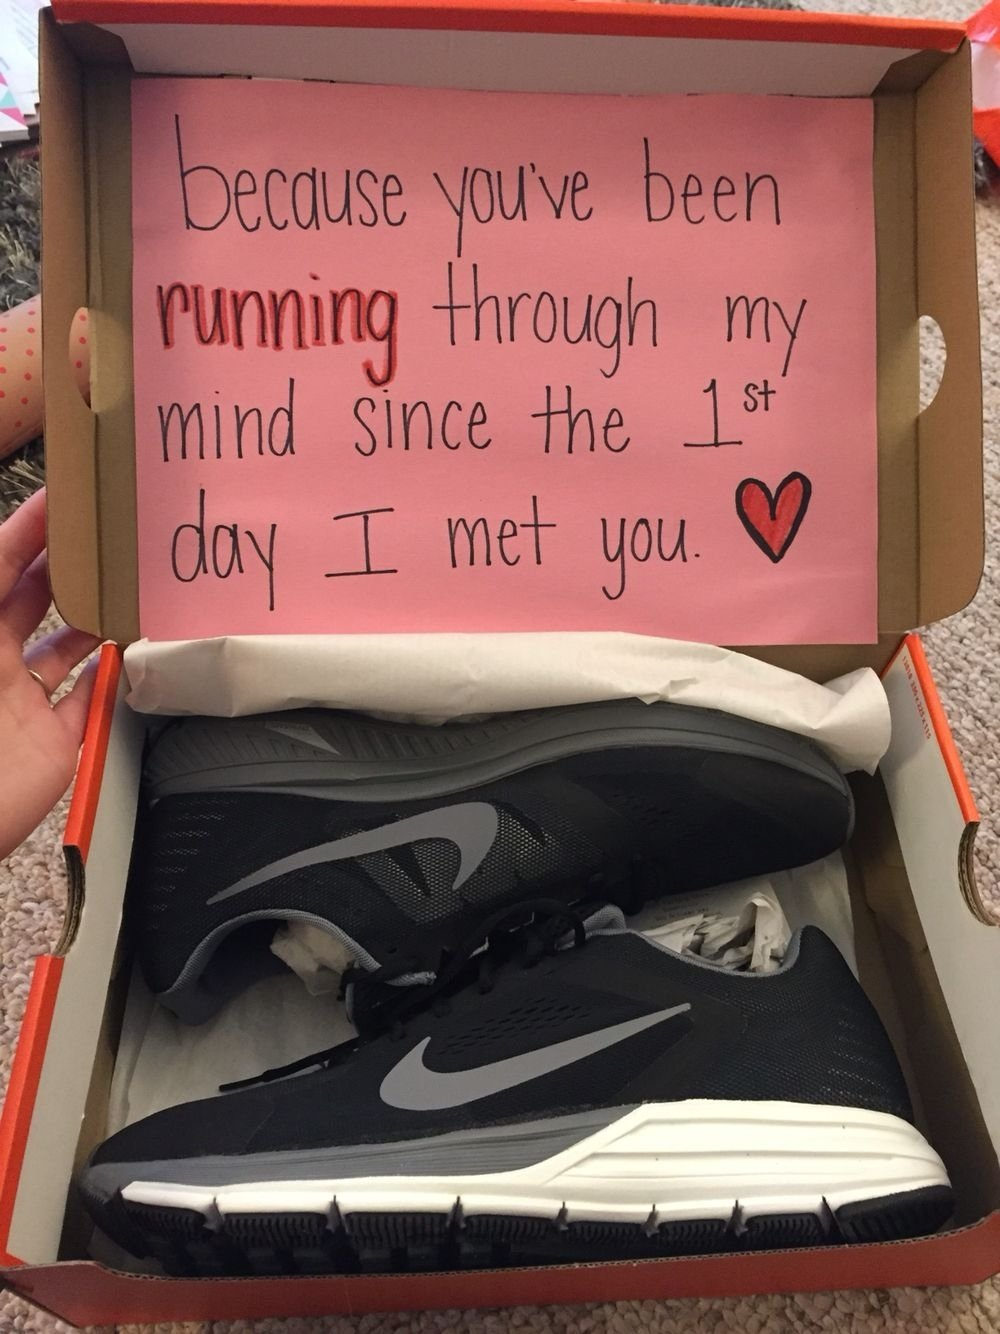 10 Spectacular Birthday Gifts Ideas For Him gift ideas for him gift idea pinterest gift boyfriends and 14